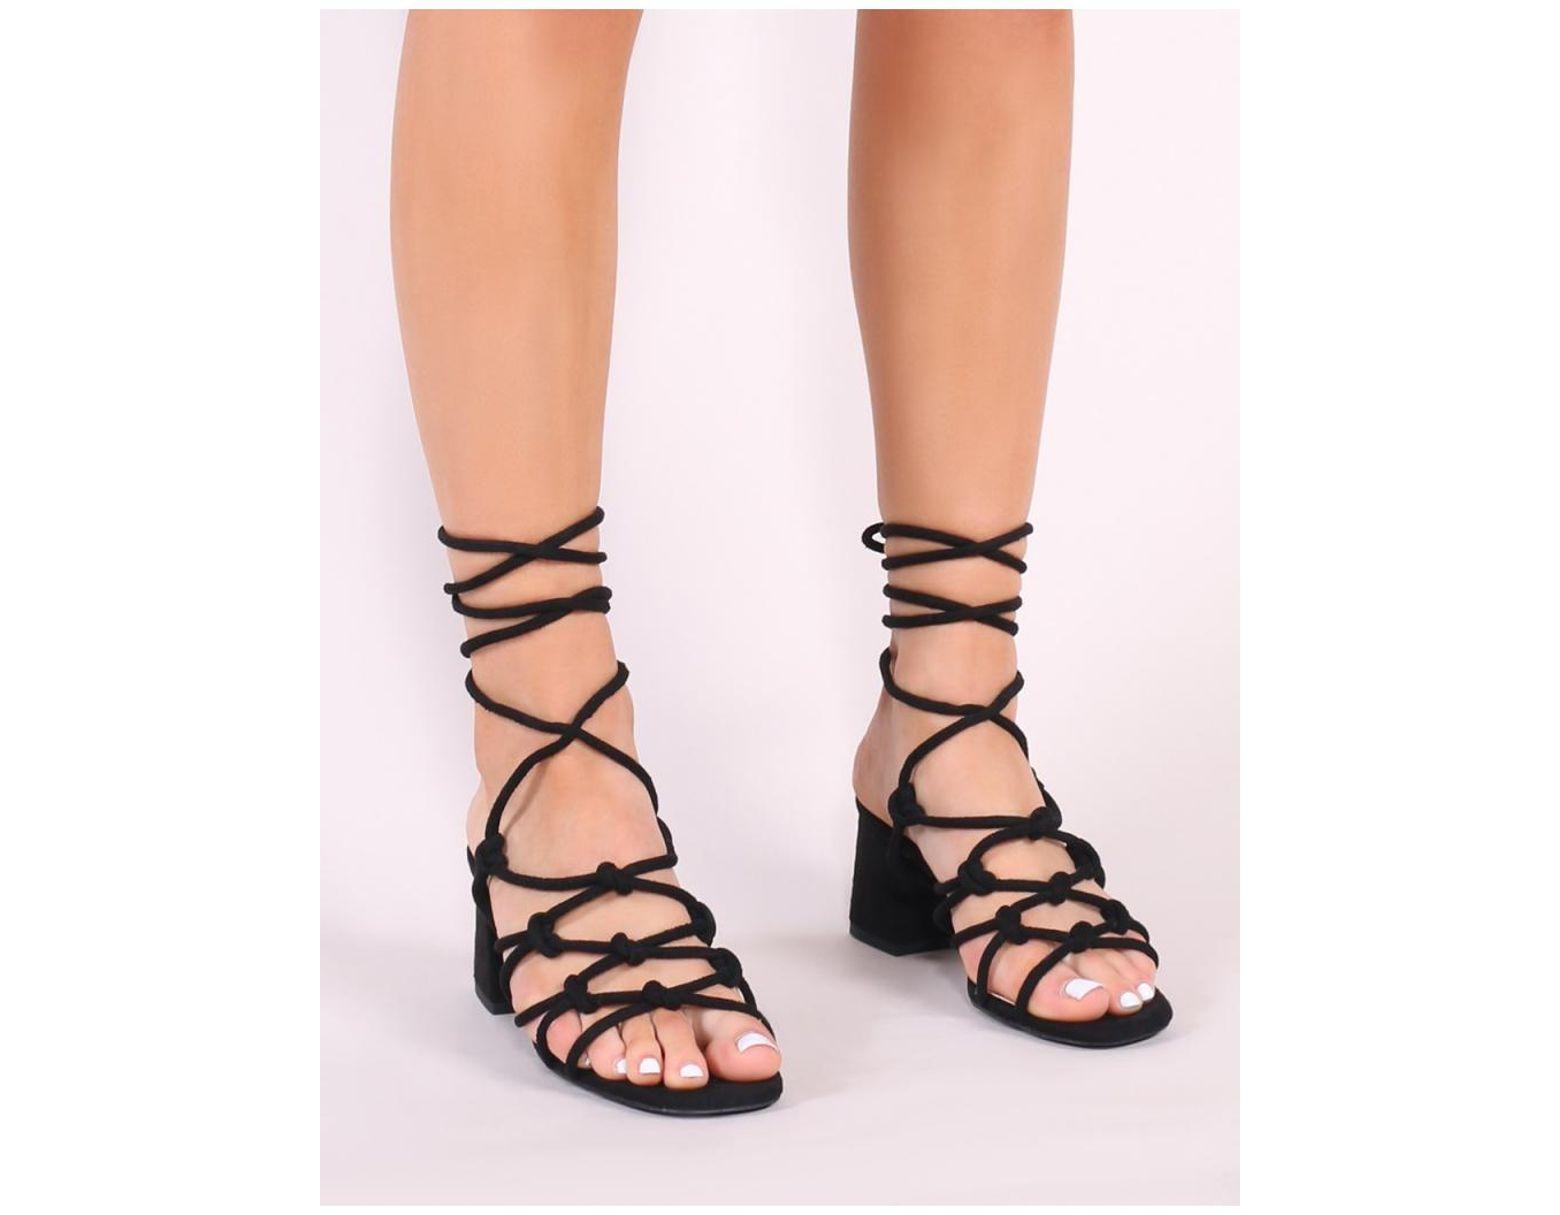 aaeff446d0d Women's Freya Knotted Strappy Block Heeled Sandals In Black Faux Suede